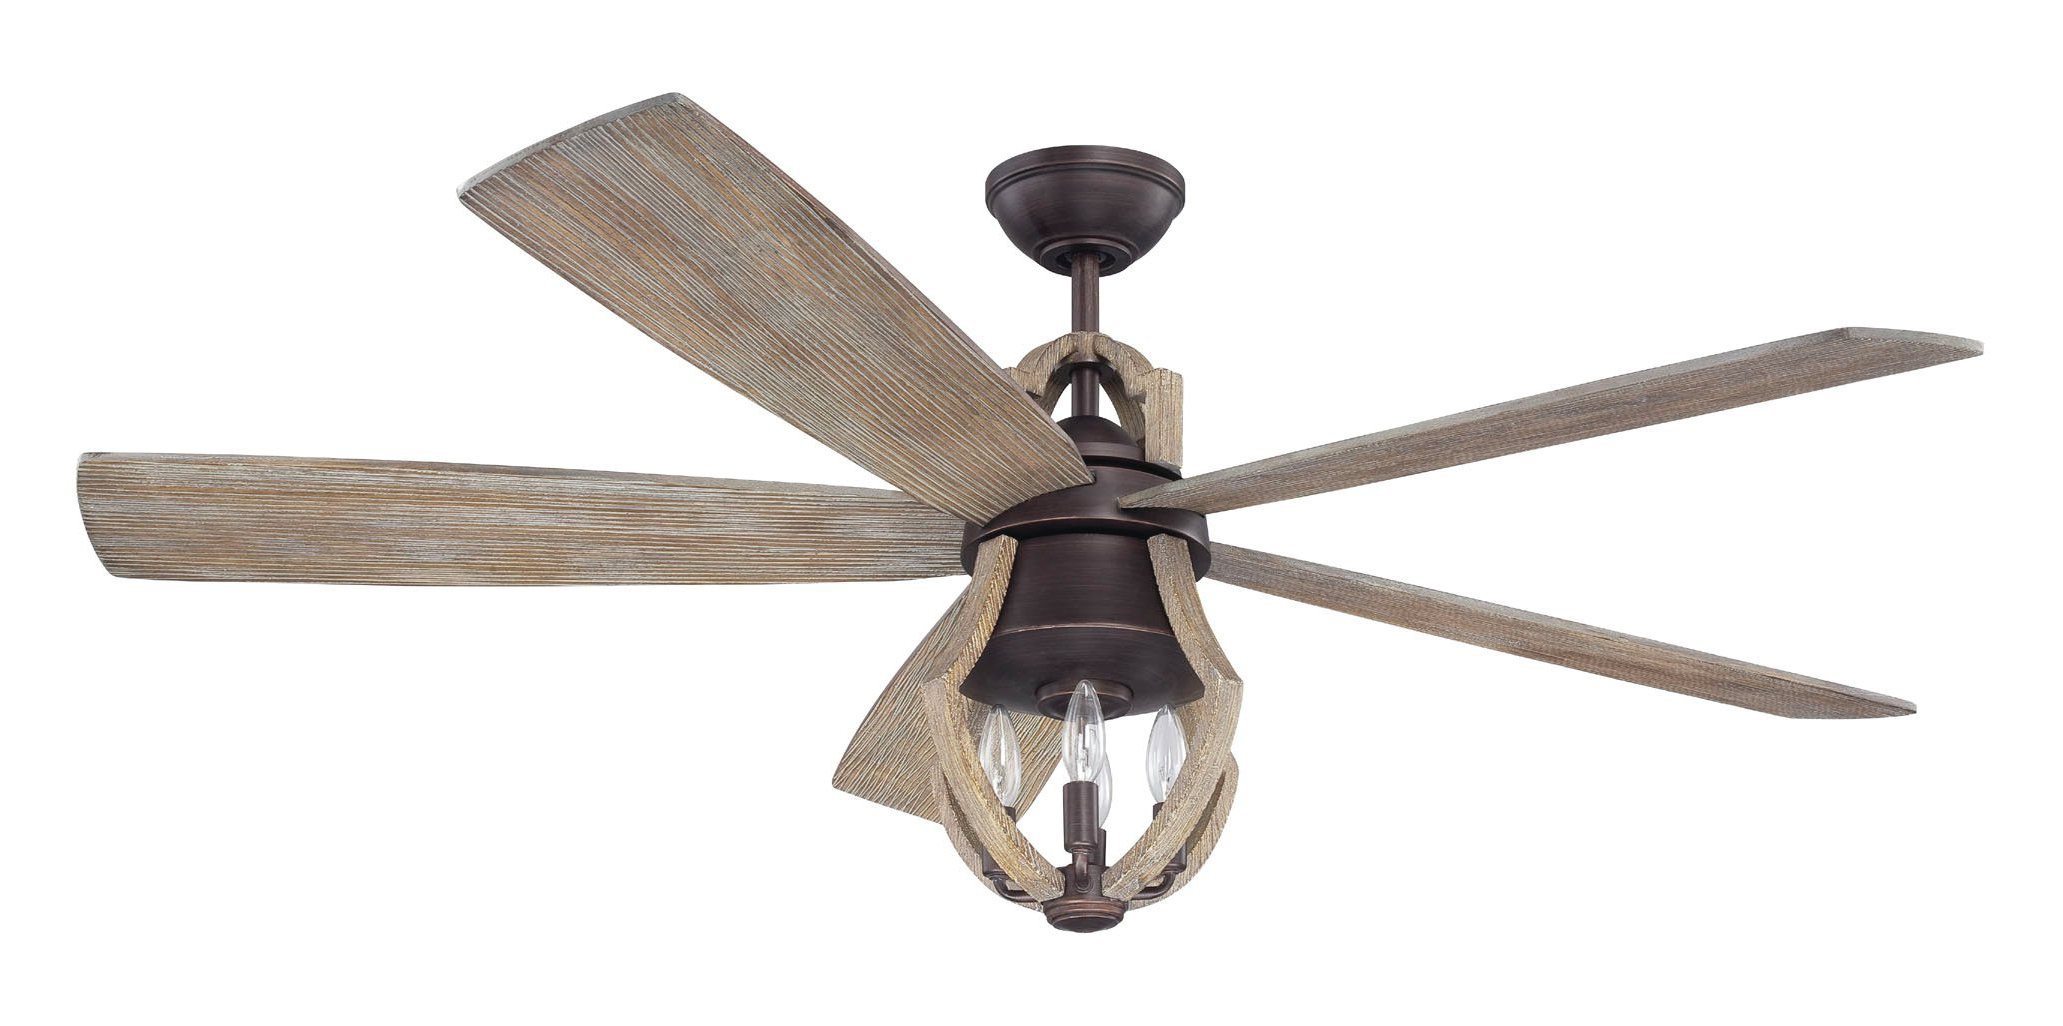 "Fashionable Ravenna 5 Blade Ceiling Fans Intended For 56"" Marcoux 5 Blade Ceiling Fan With Remote, Light Kit Included (View 11 of 20)"